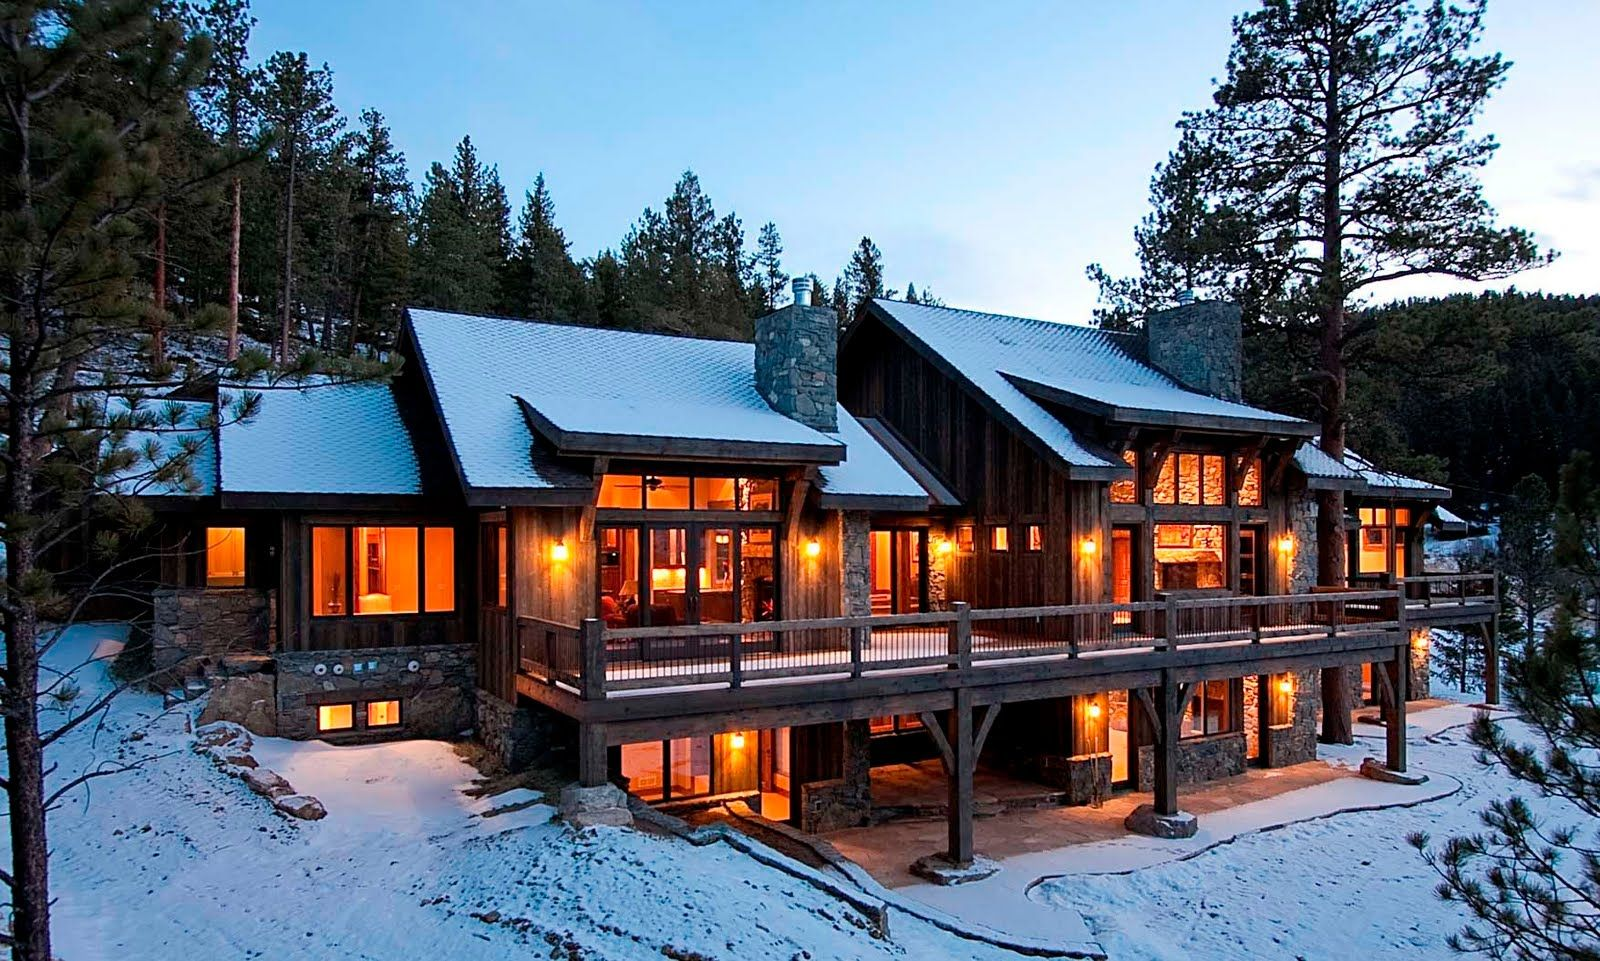 Tkp architects pc tkp design wins best in american living for Mountain modern house plans